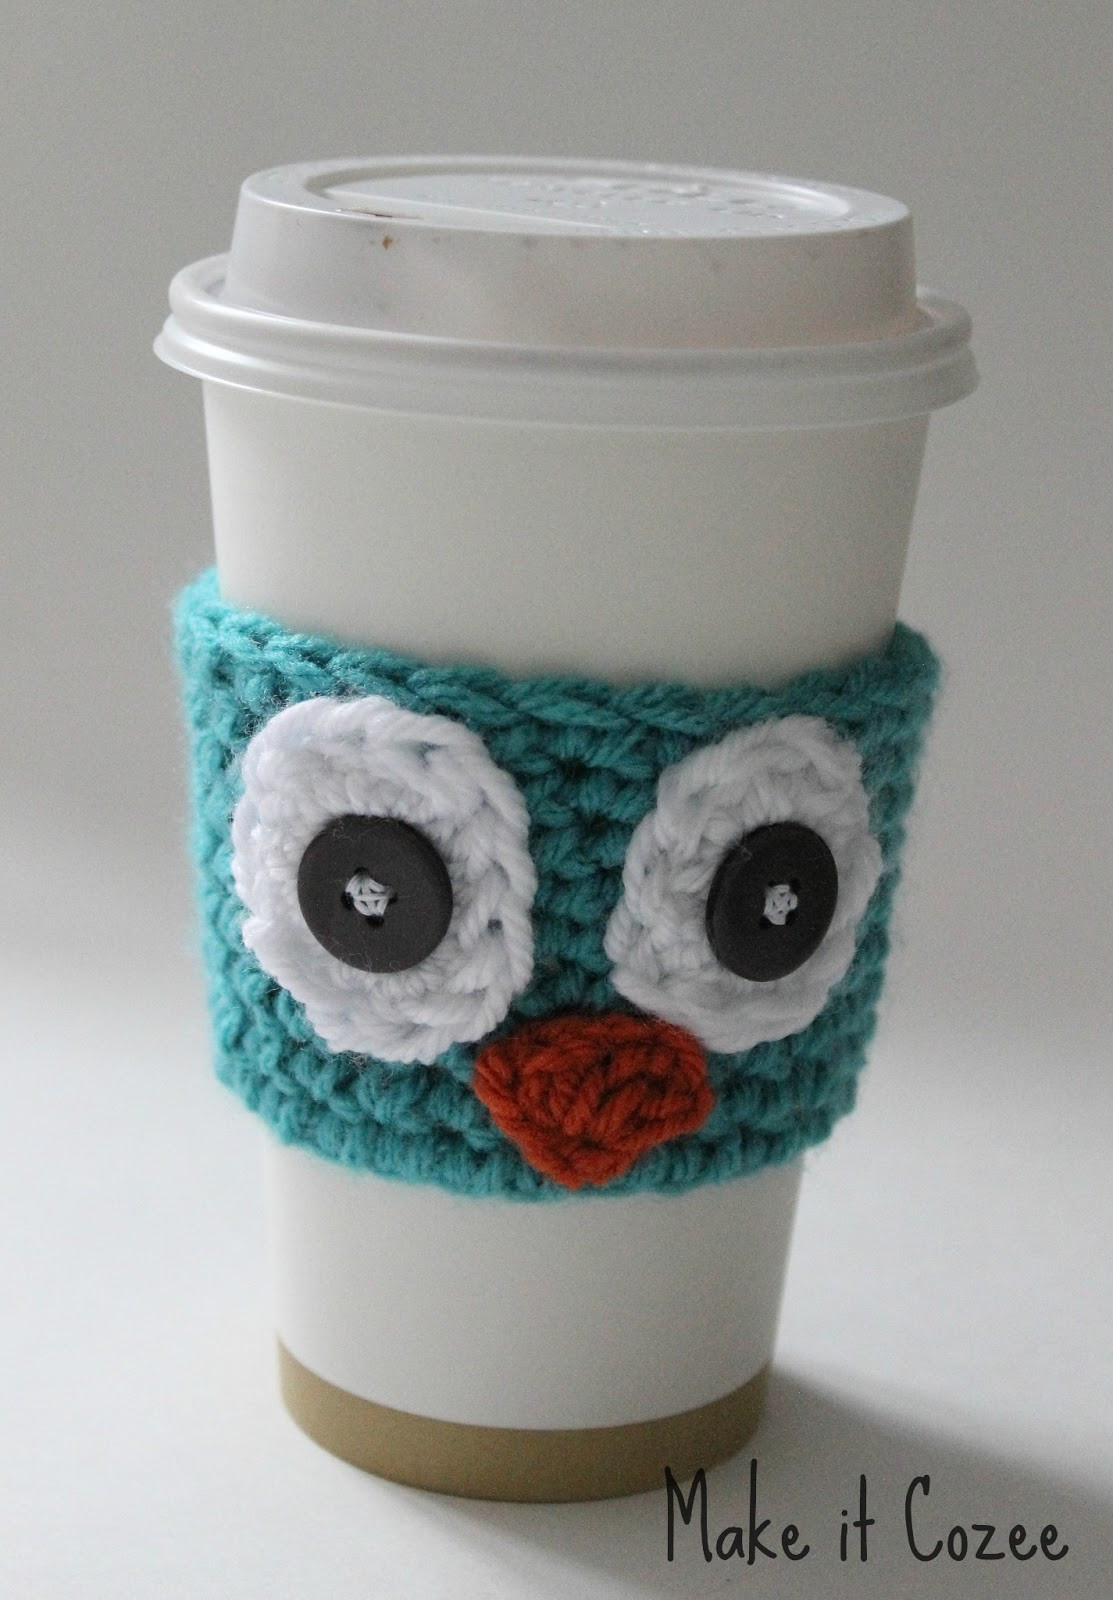 Crochet Coffee Cup Cozy Inspirational Make It Cozee Crochet Owl Coffee Cozy Of Crochet Coffee Cup Cozy Elegant Basketweave Cup Cozy Crochet Pattern with